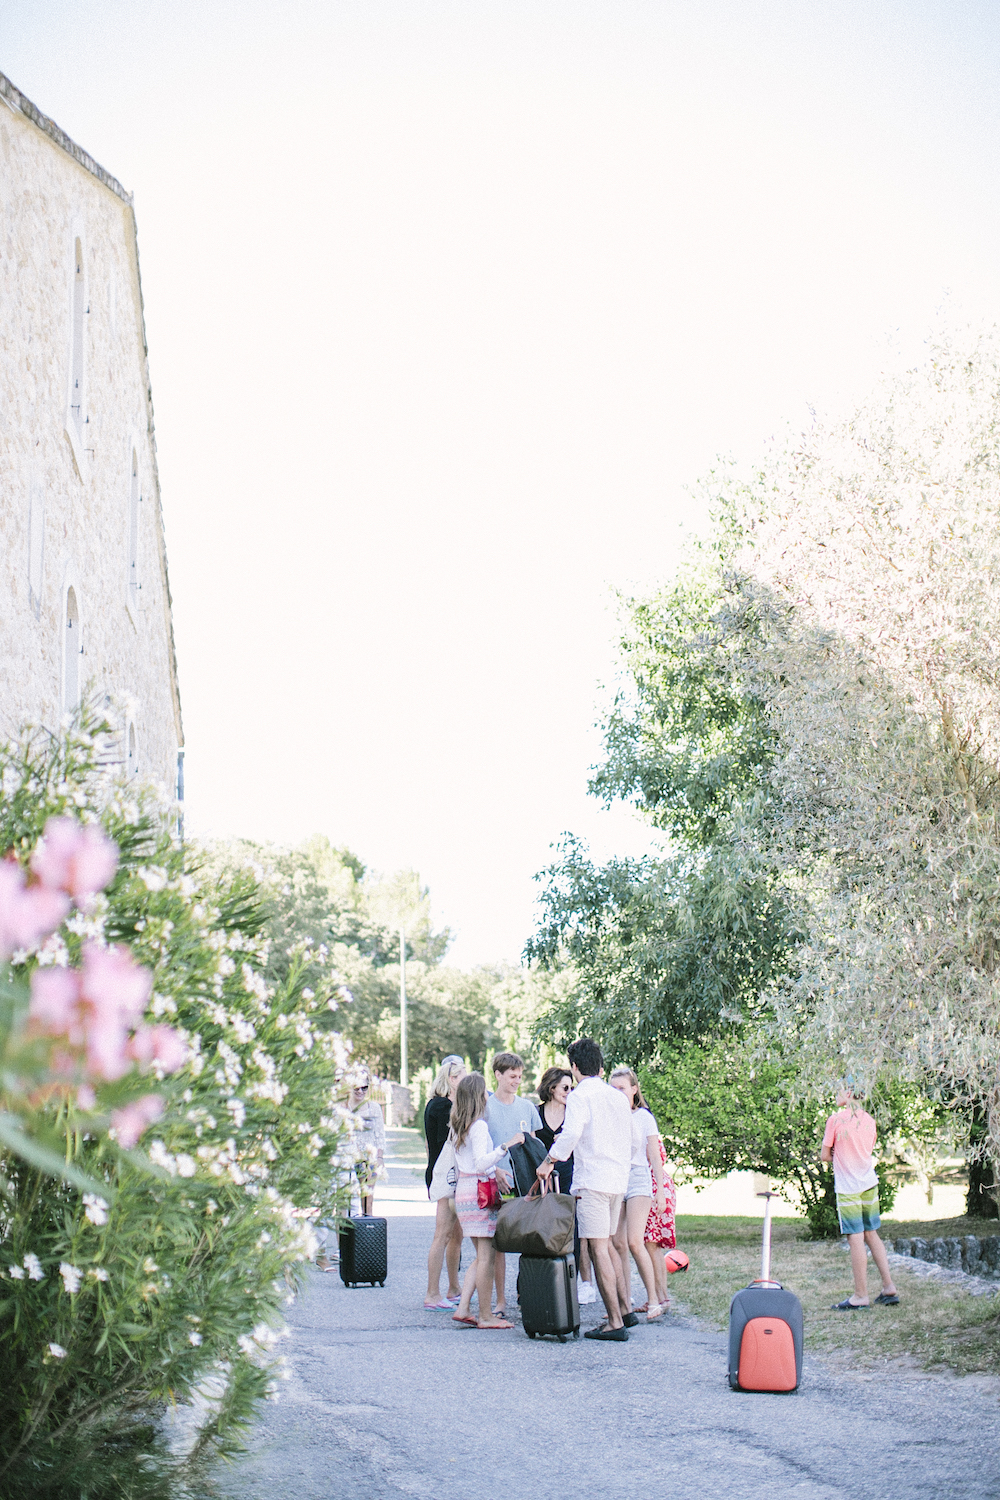 saya-photography-rustic-french-wedding-provence-domaines-de-patras-.jpg